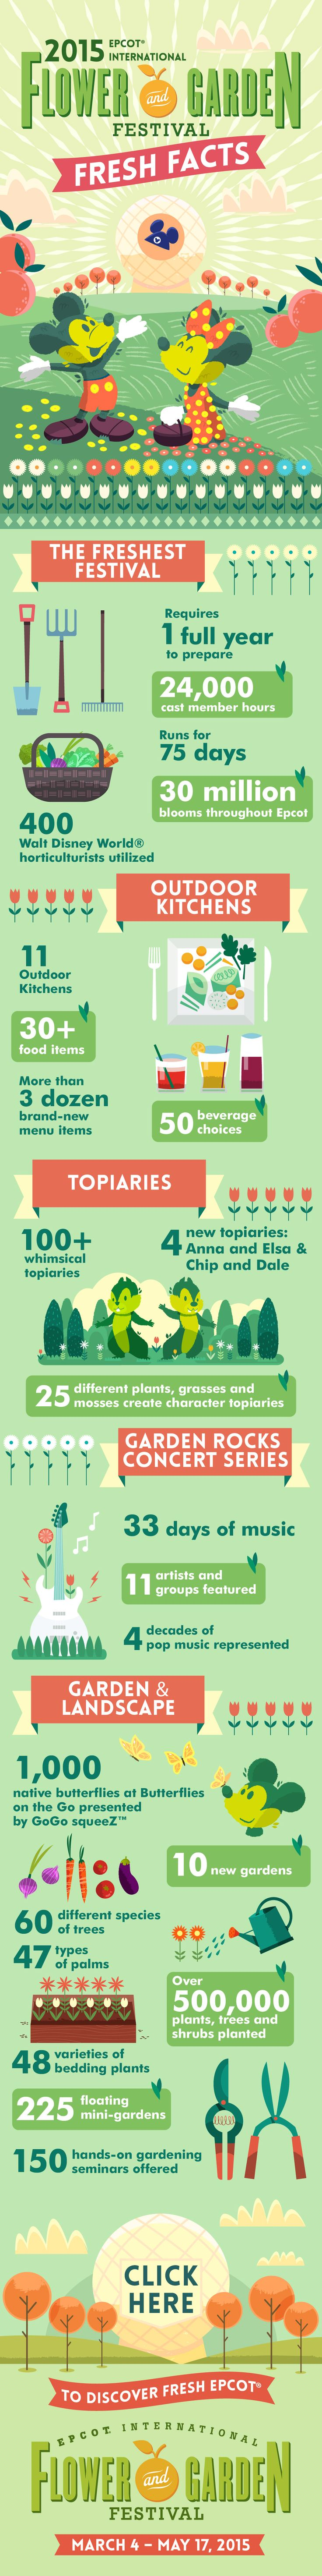 Check out these fresh facts about the Epcot International Flower and Garden Festival at Walt Disney World!